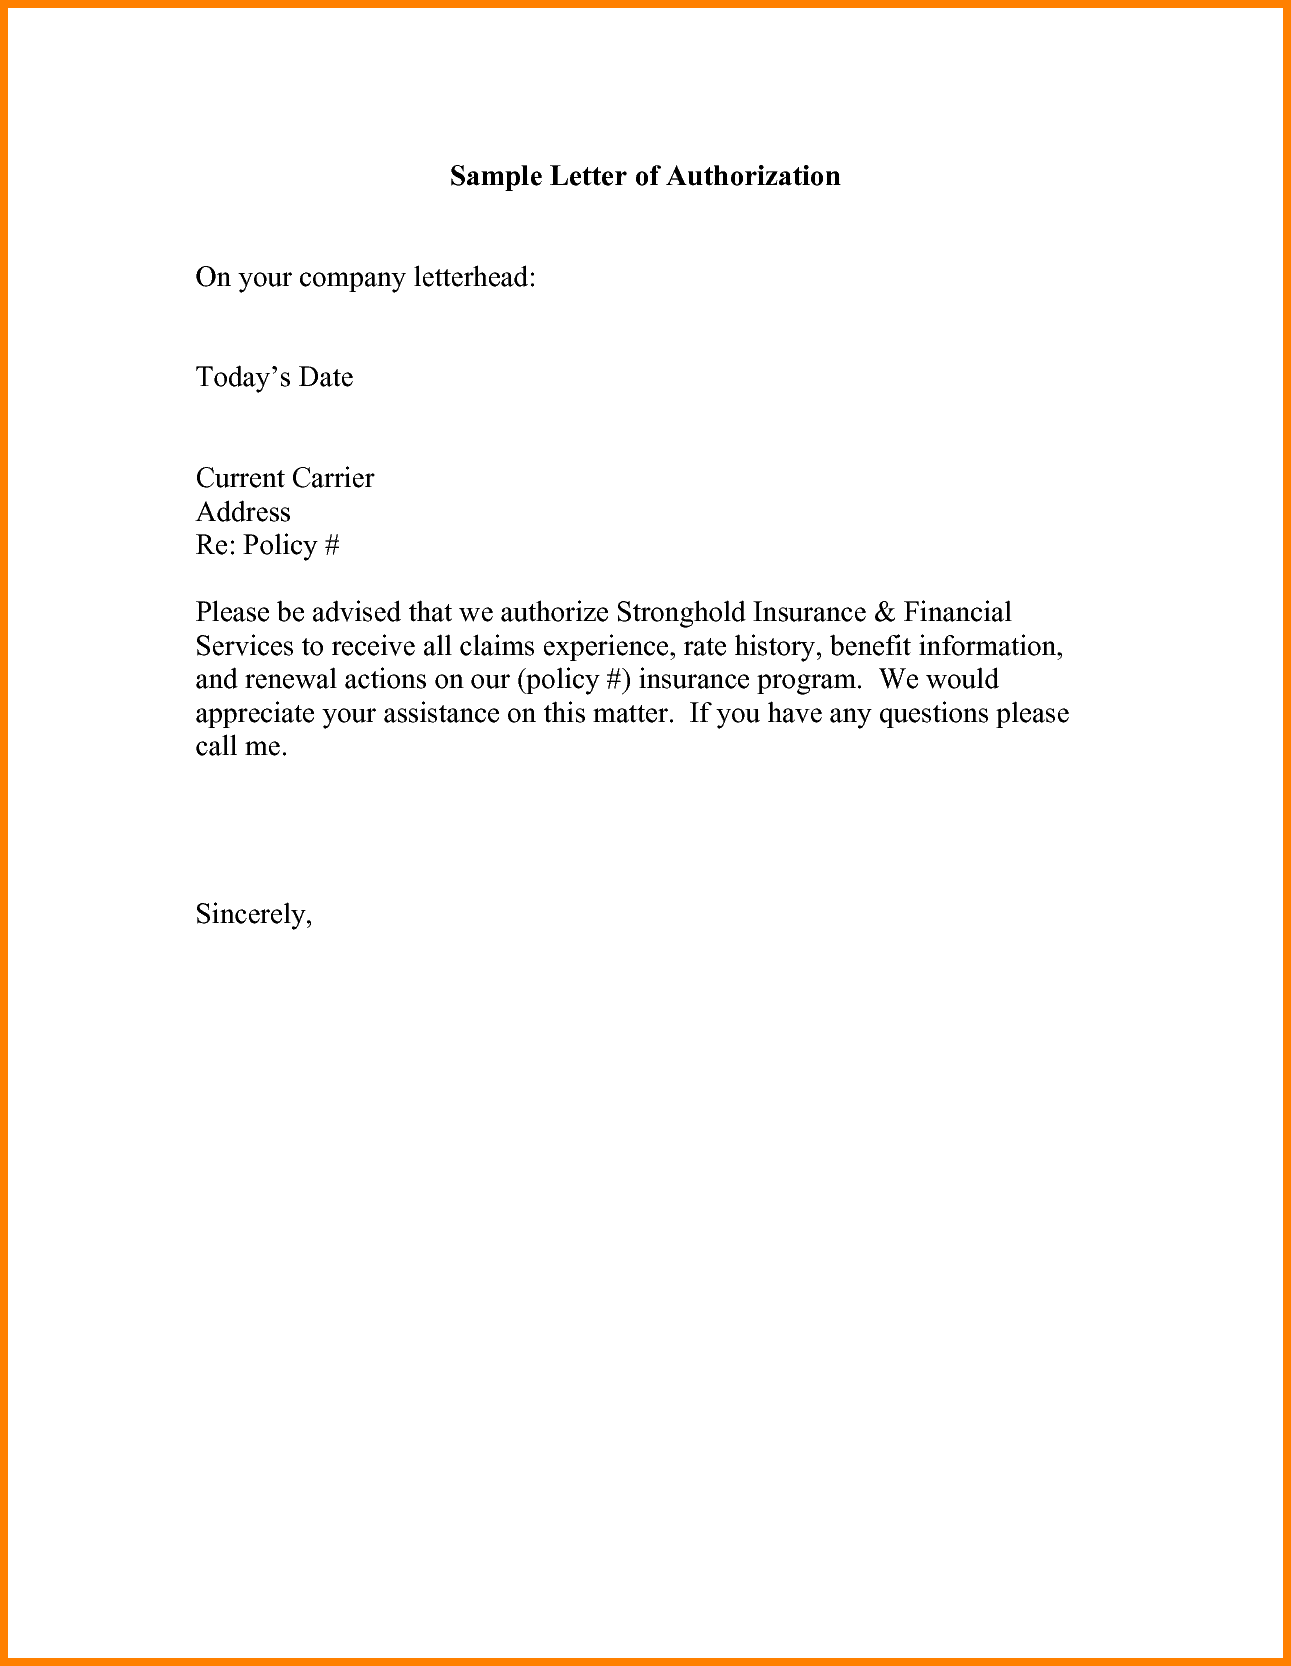 How to Write example of Authorization Letter